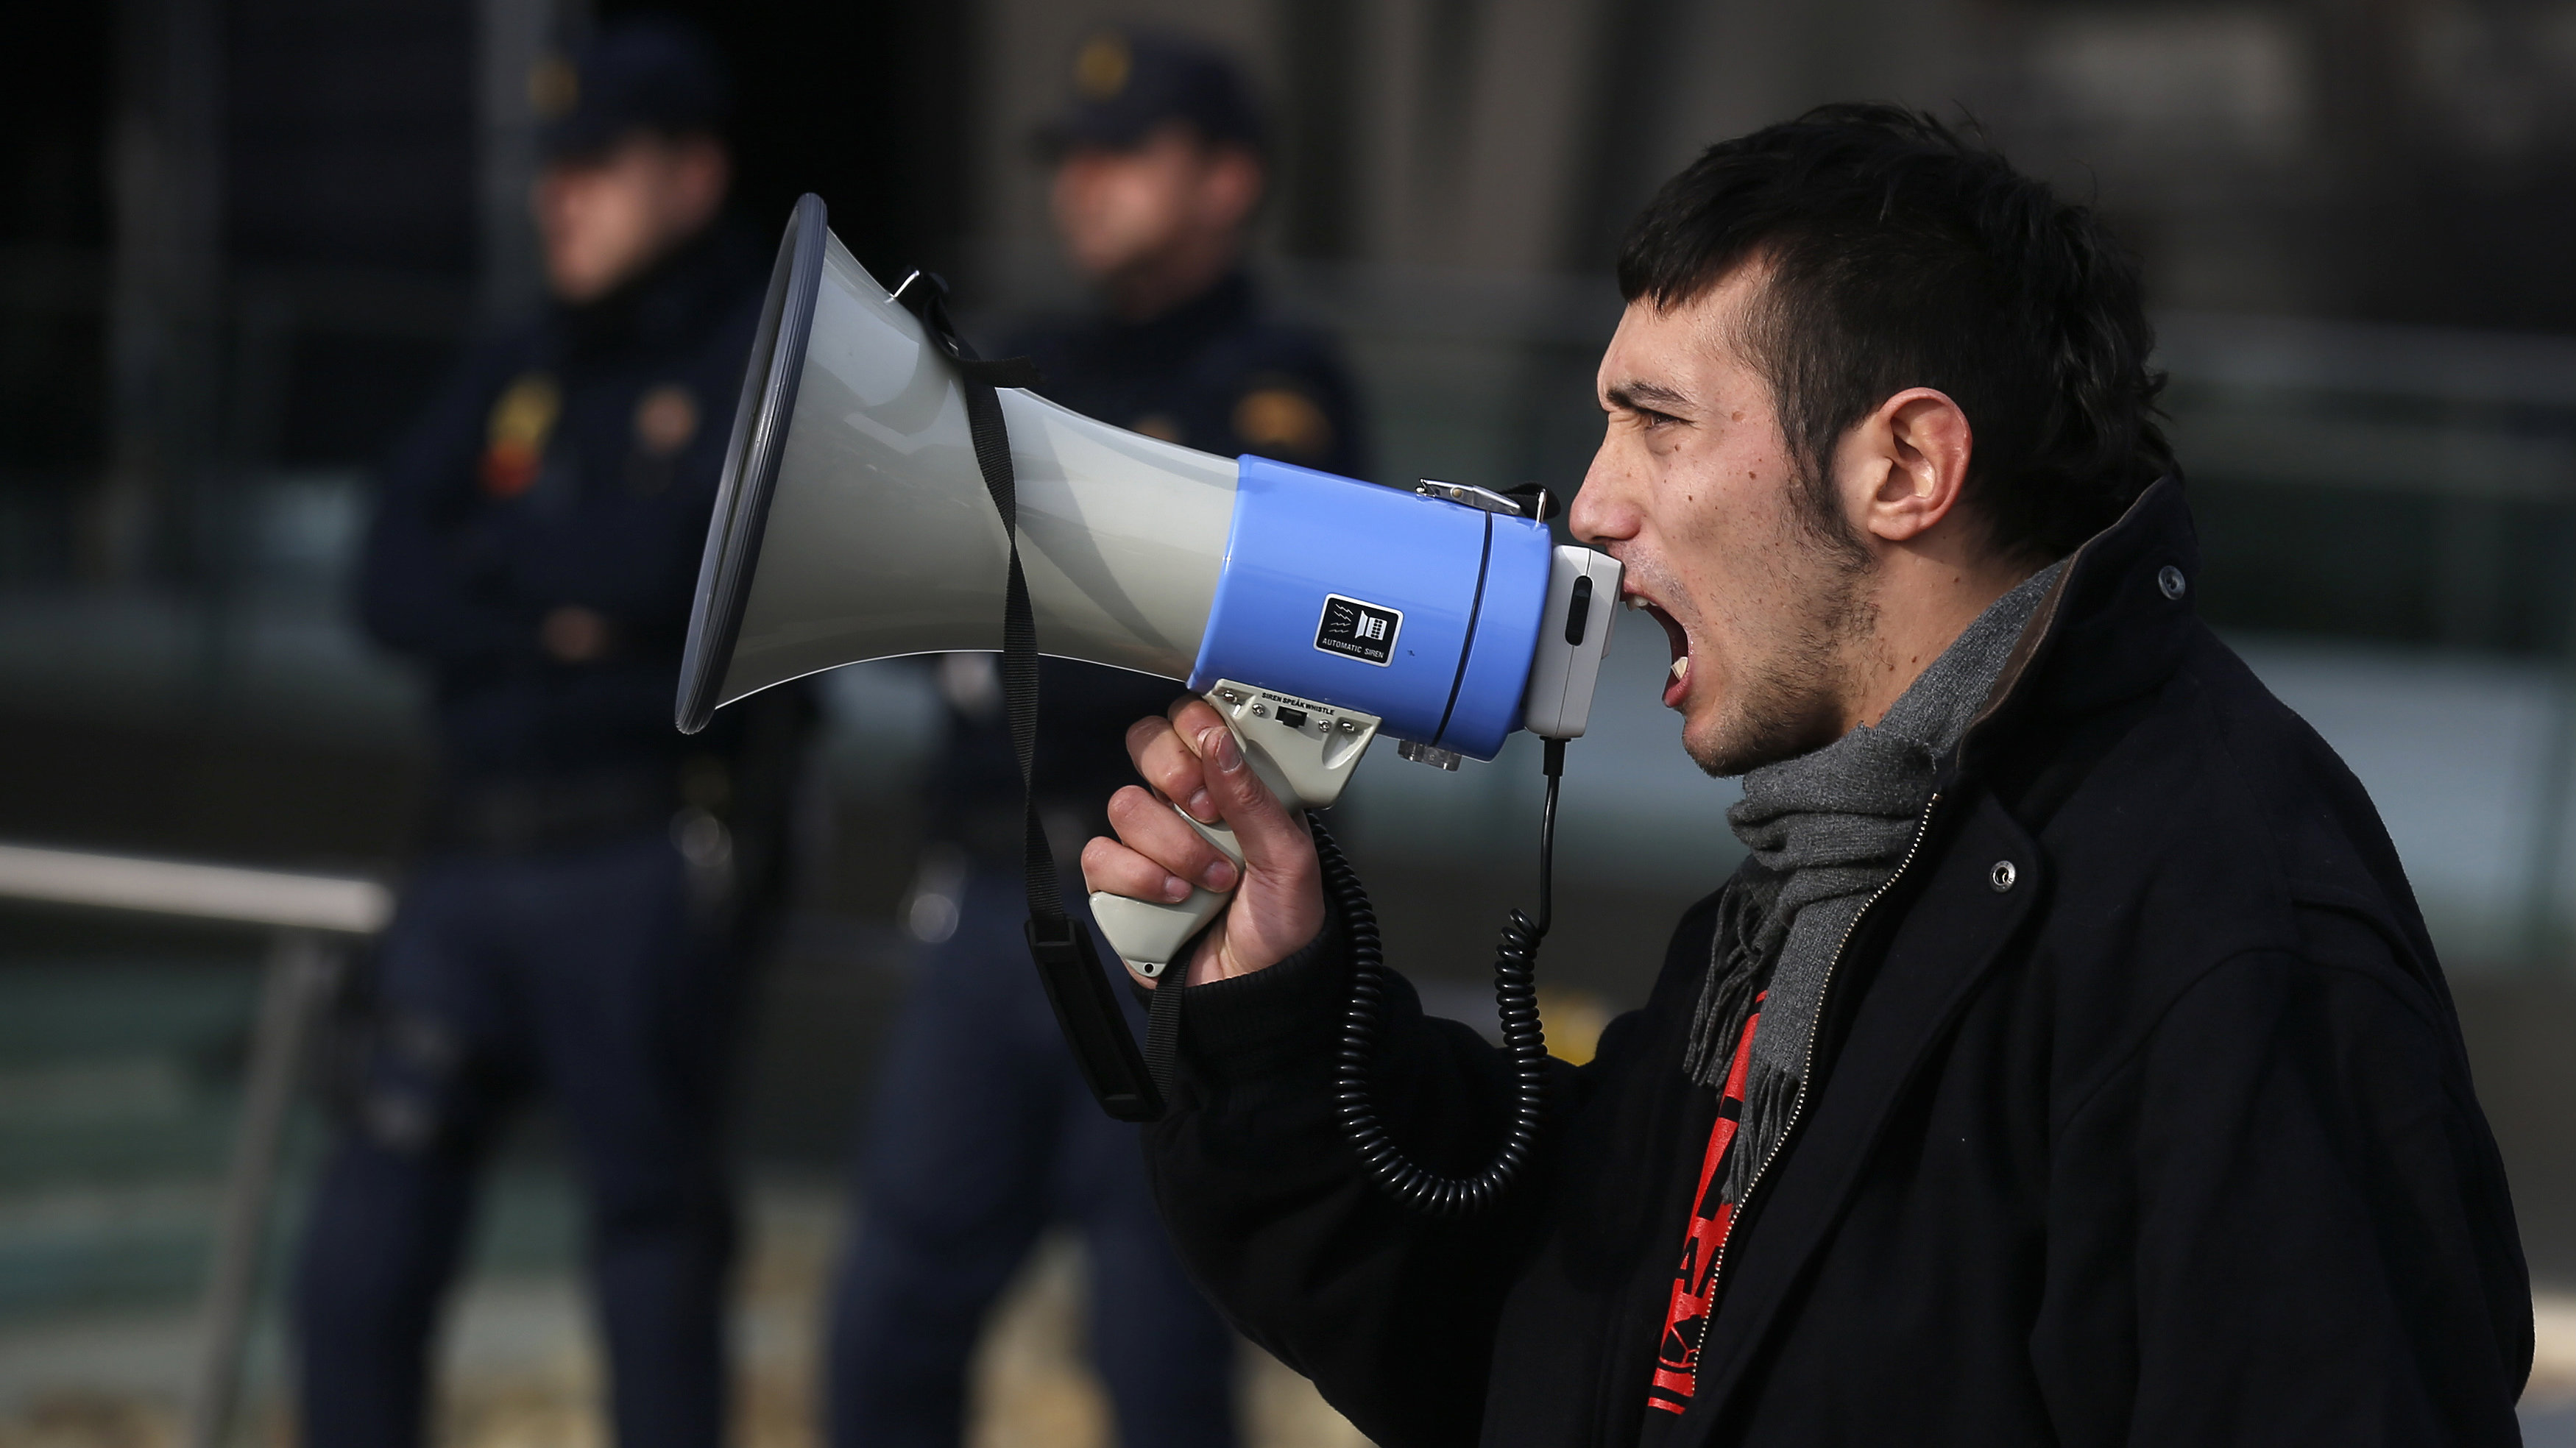 An anti-eviction demonstrator speaks into a megaphone during a protest outside Spain's Bankia bank headquarters in Madrid December 10, 2012.